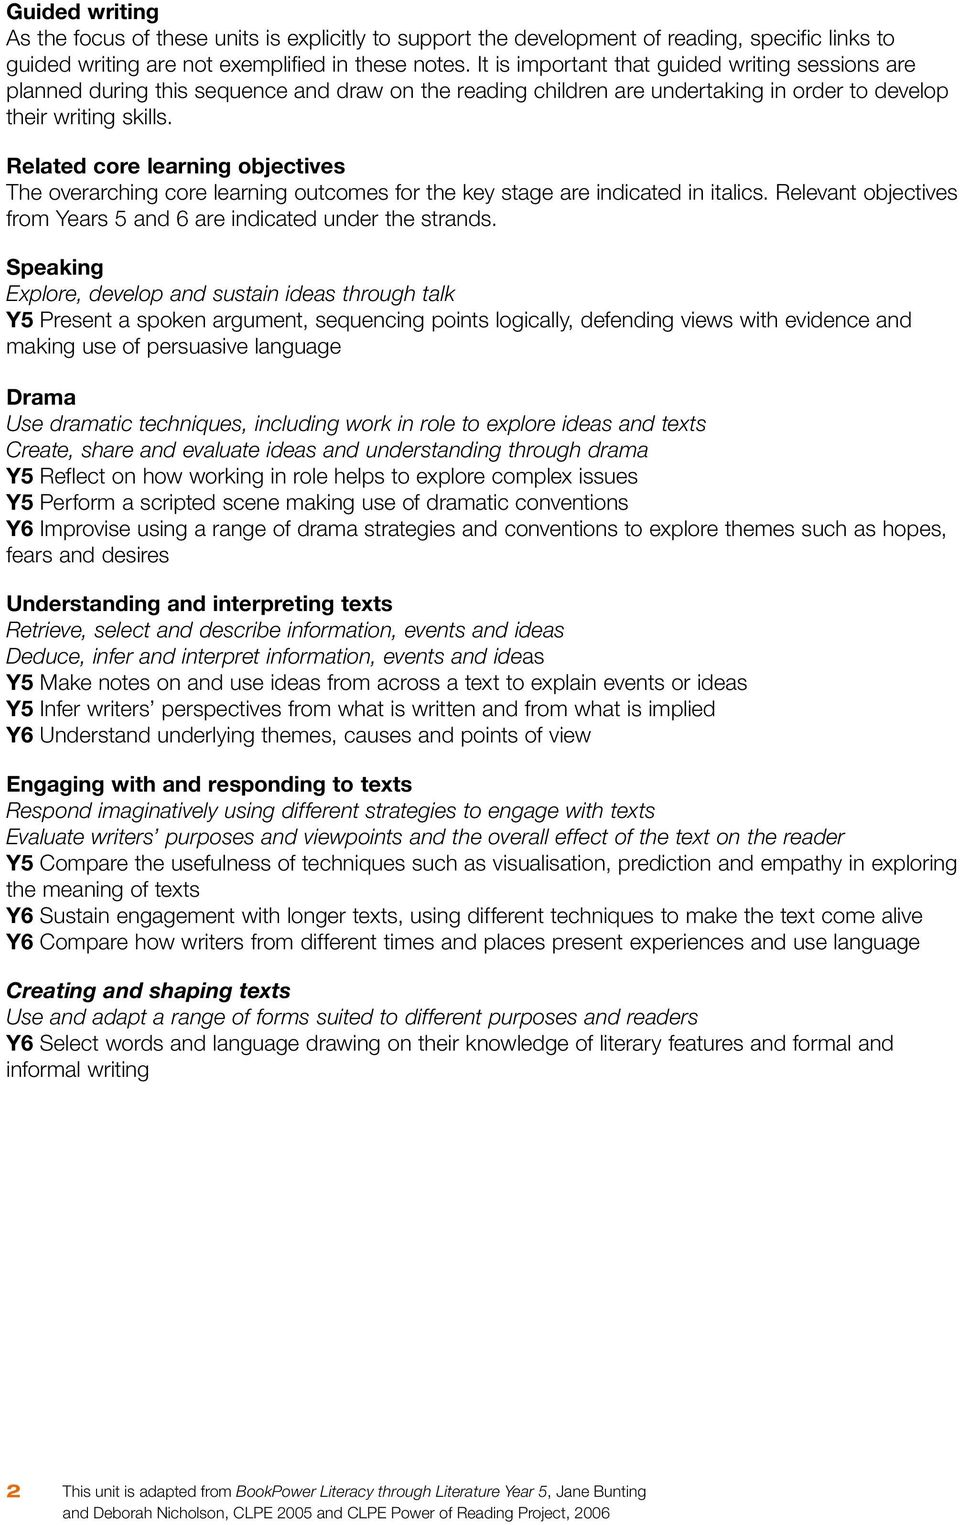 Related core learning objectives The overarching core learning outcomes for the key stage are indicated in italics. Relevant objectives from Years 5 and 6 are indicated under the strands.